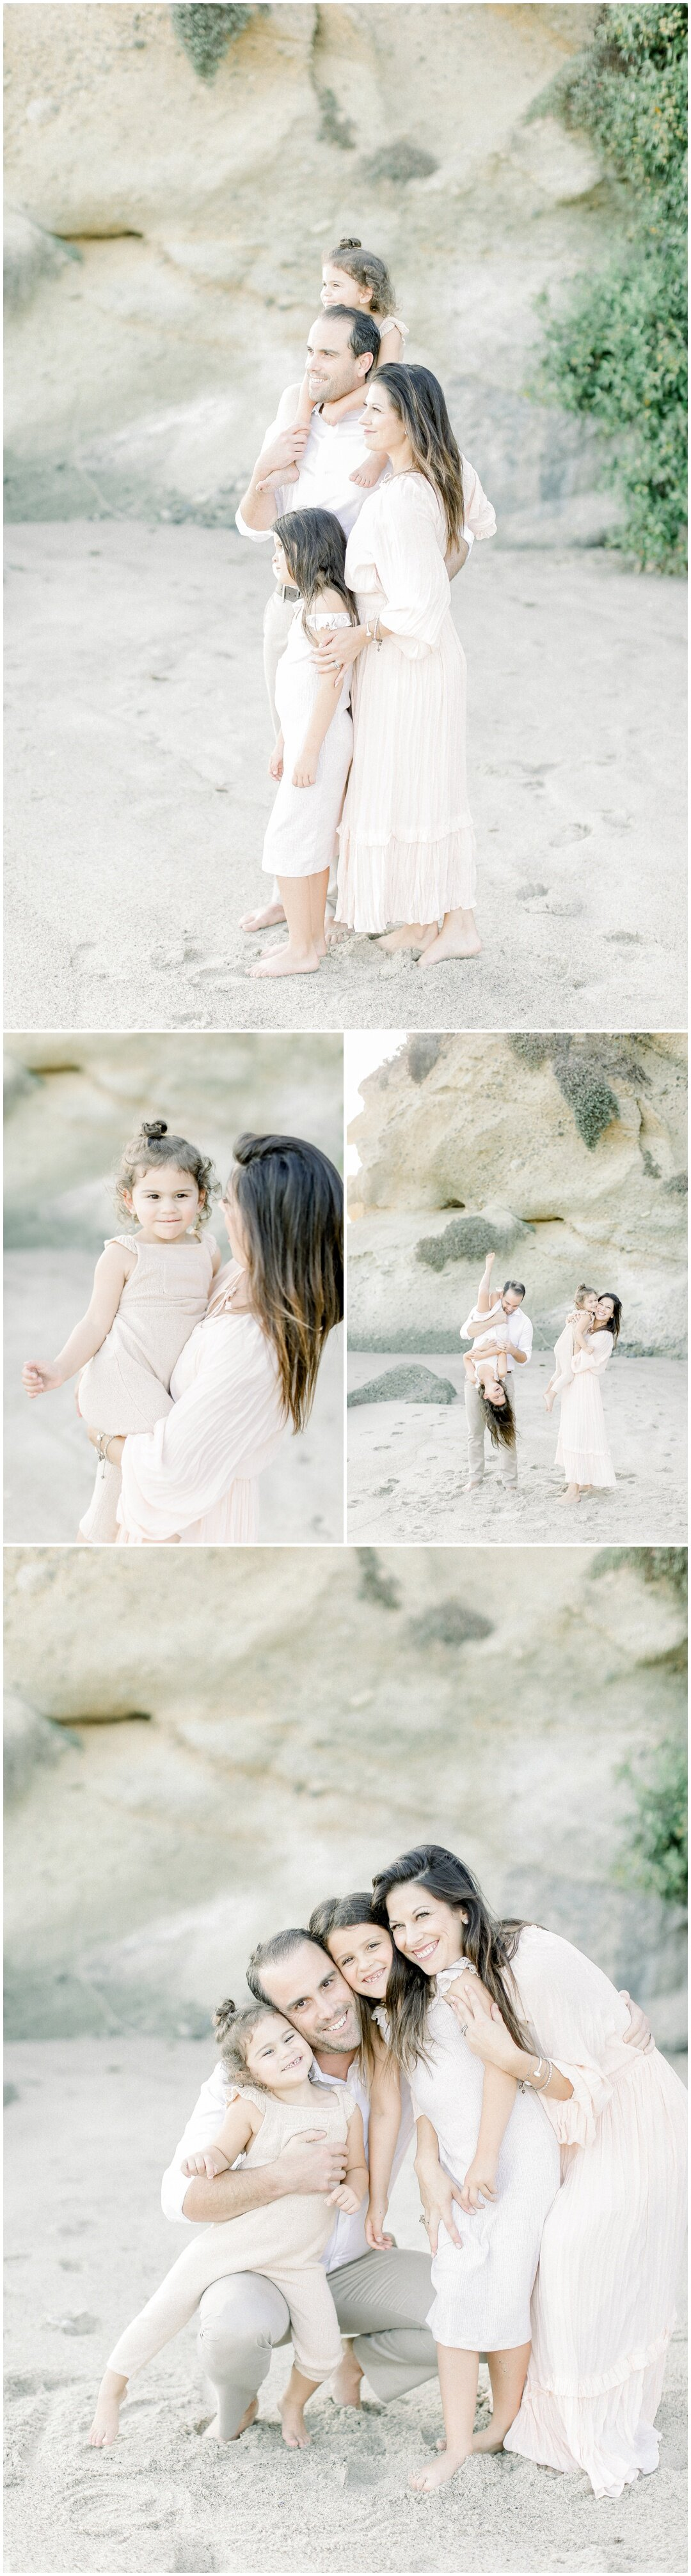 Newport+Beach+Newborn+Maternity+Photographer+Orange+County+Family+Photographer+Cori+Kleckner+Photography+Natalie+Hay+Loretz+Robert+Hay+The+Hay+Family_4442.jpg